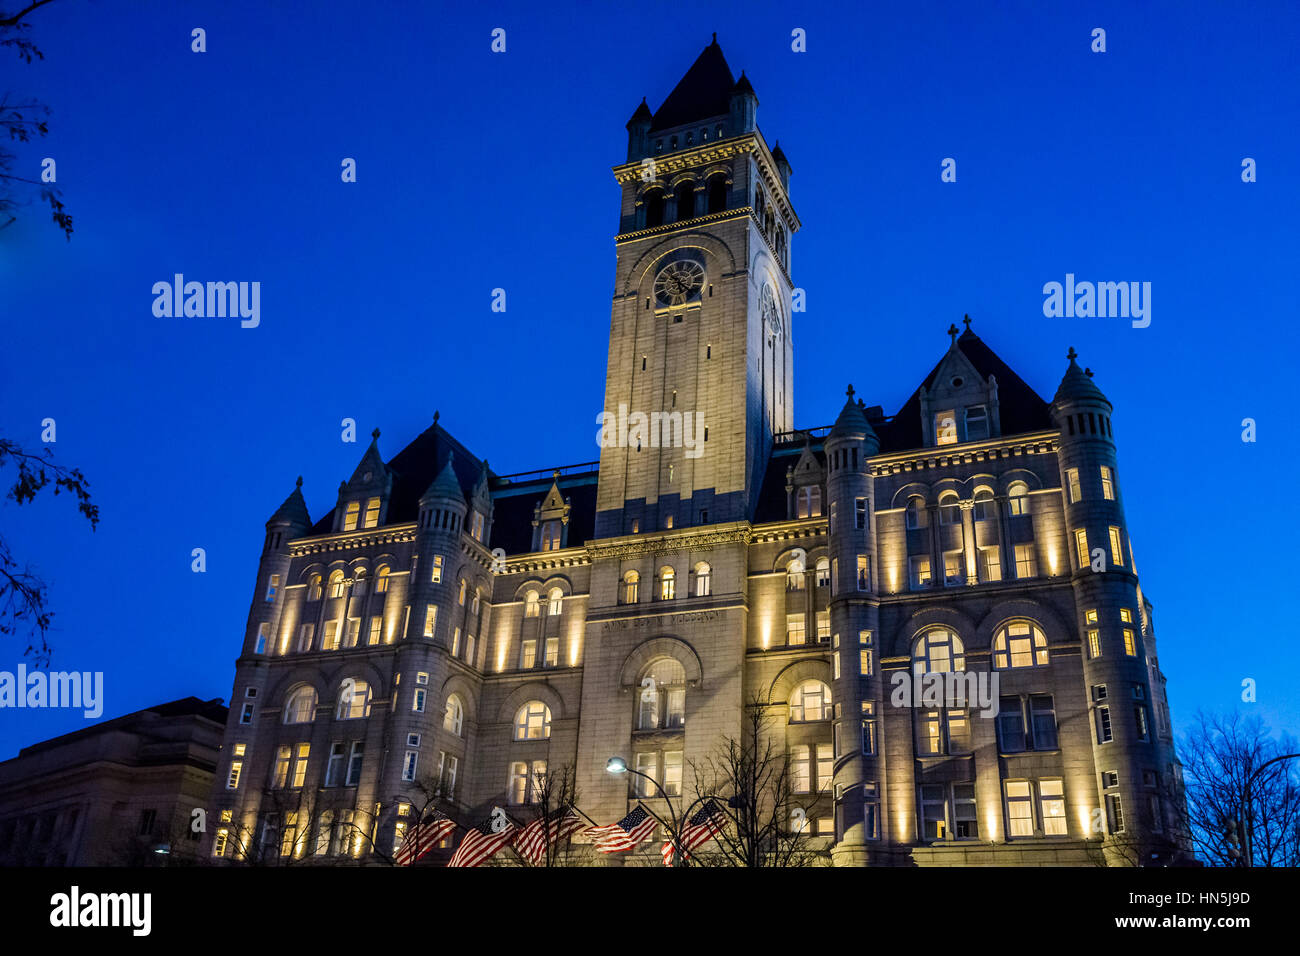 Washington DC, USA - December 29, 2016: Trump International Hotel and the Old Post Office Tower during blue hour - Stock Image